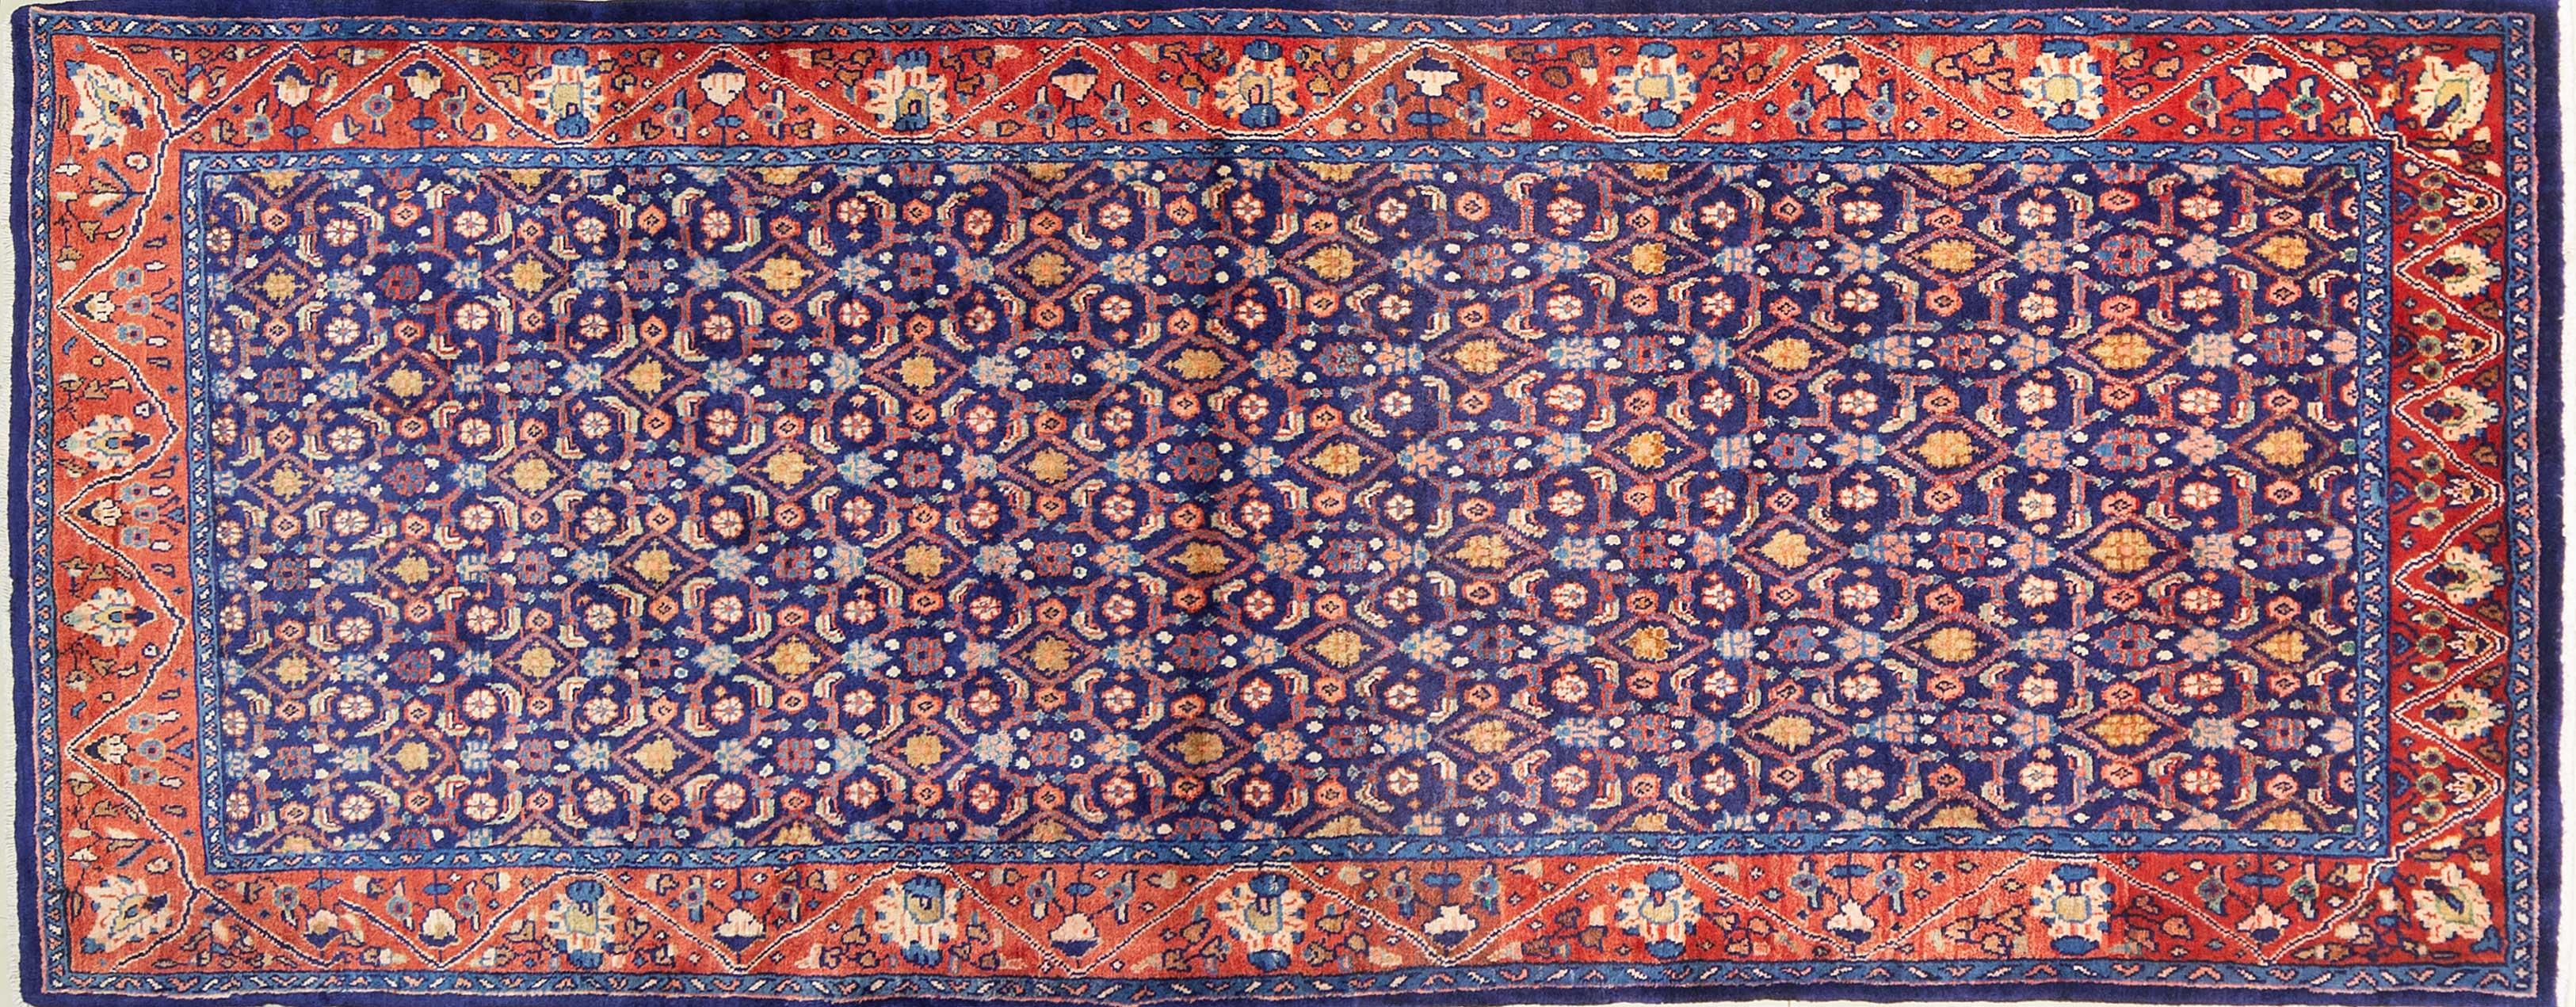 A Persian Hand Knotted Mahal Runner, 283 x 110